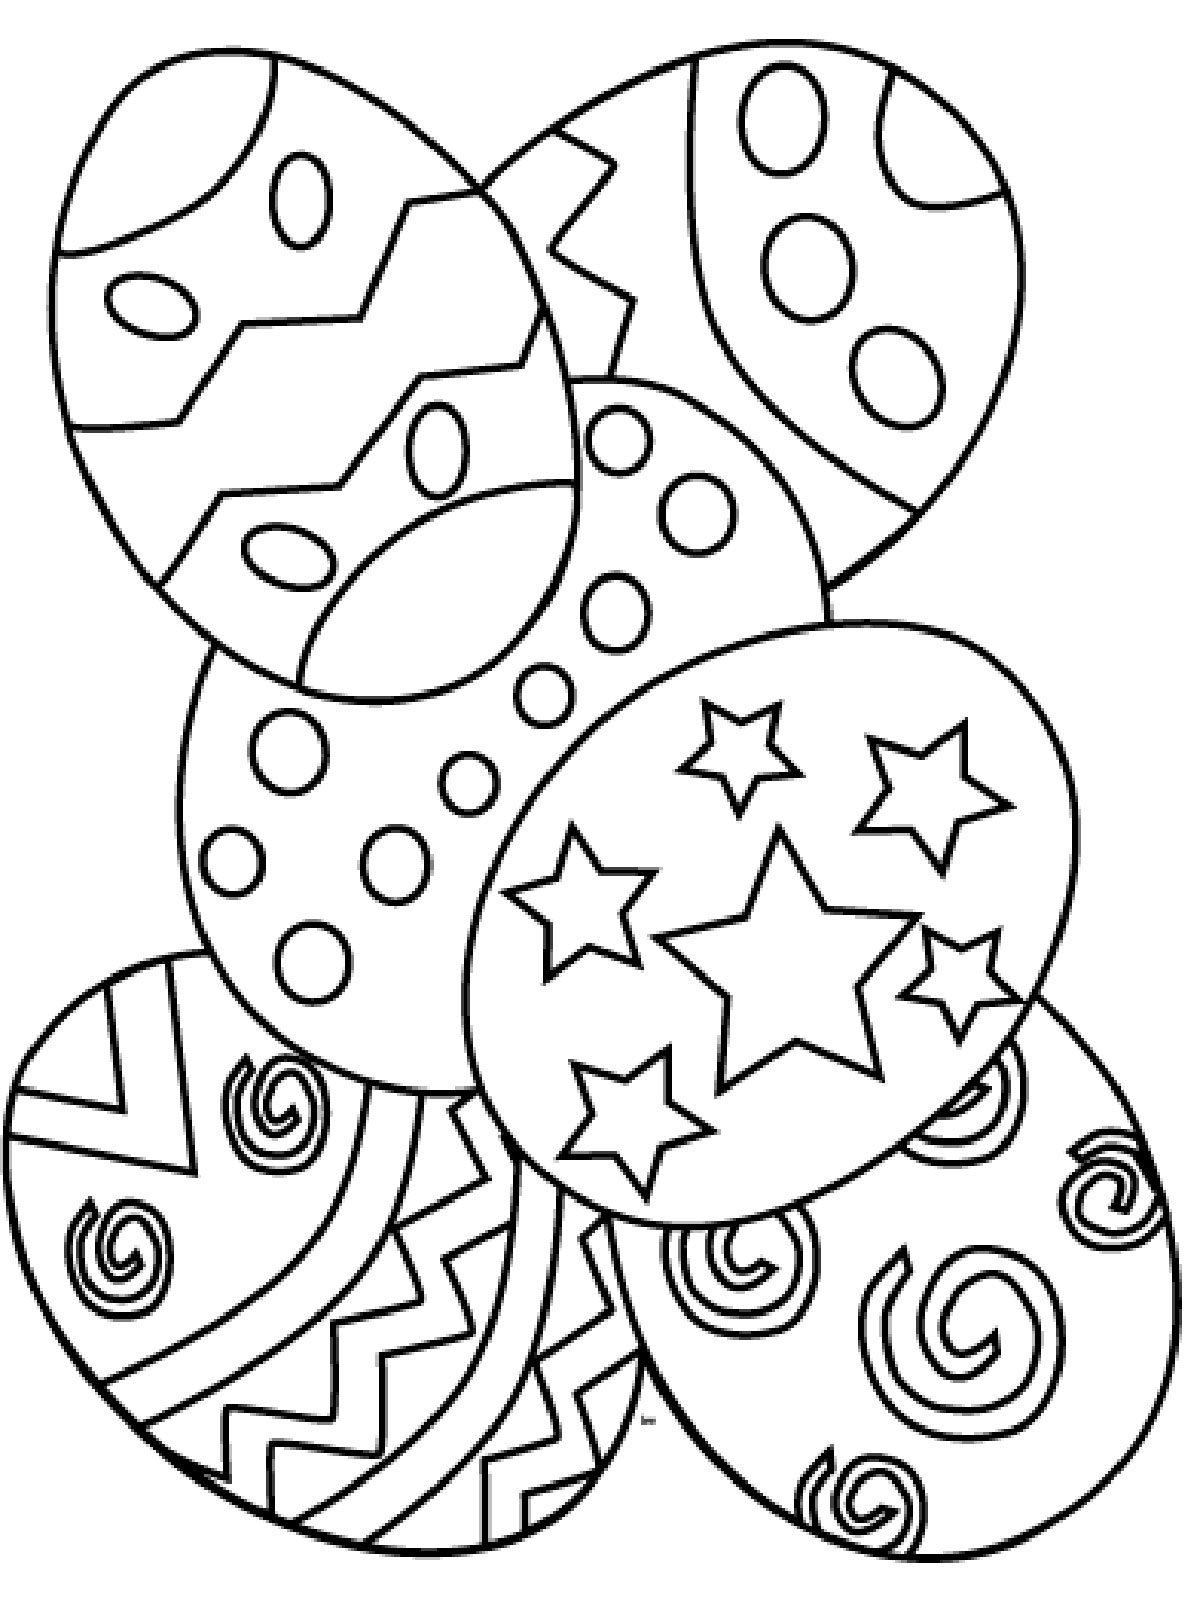 Easter coloring pages for childrens printable for free for Easter coloring pages for boys